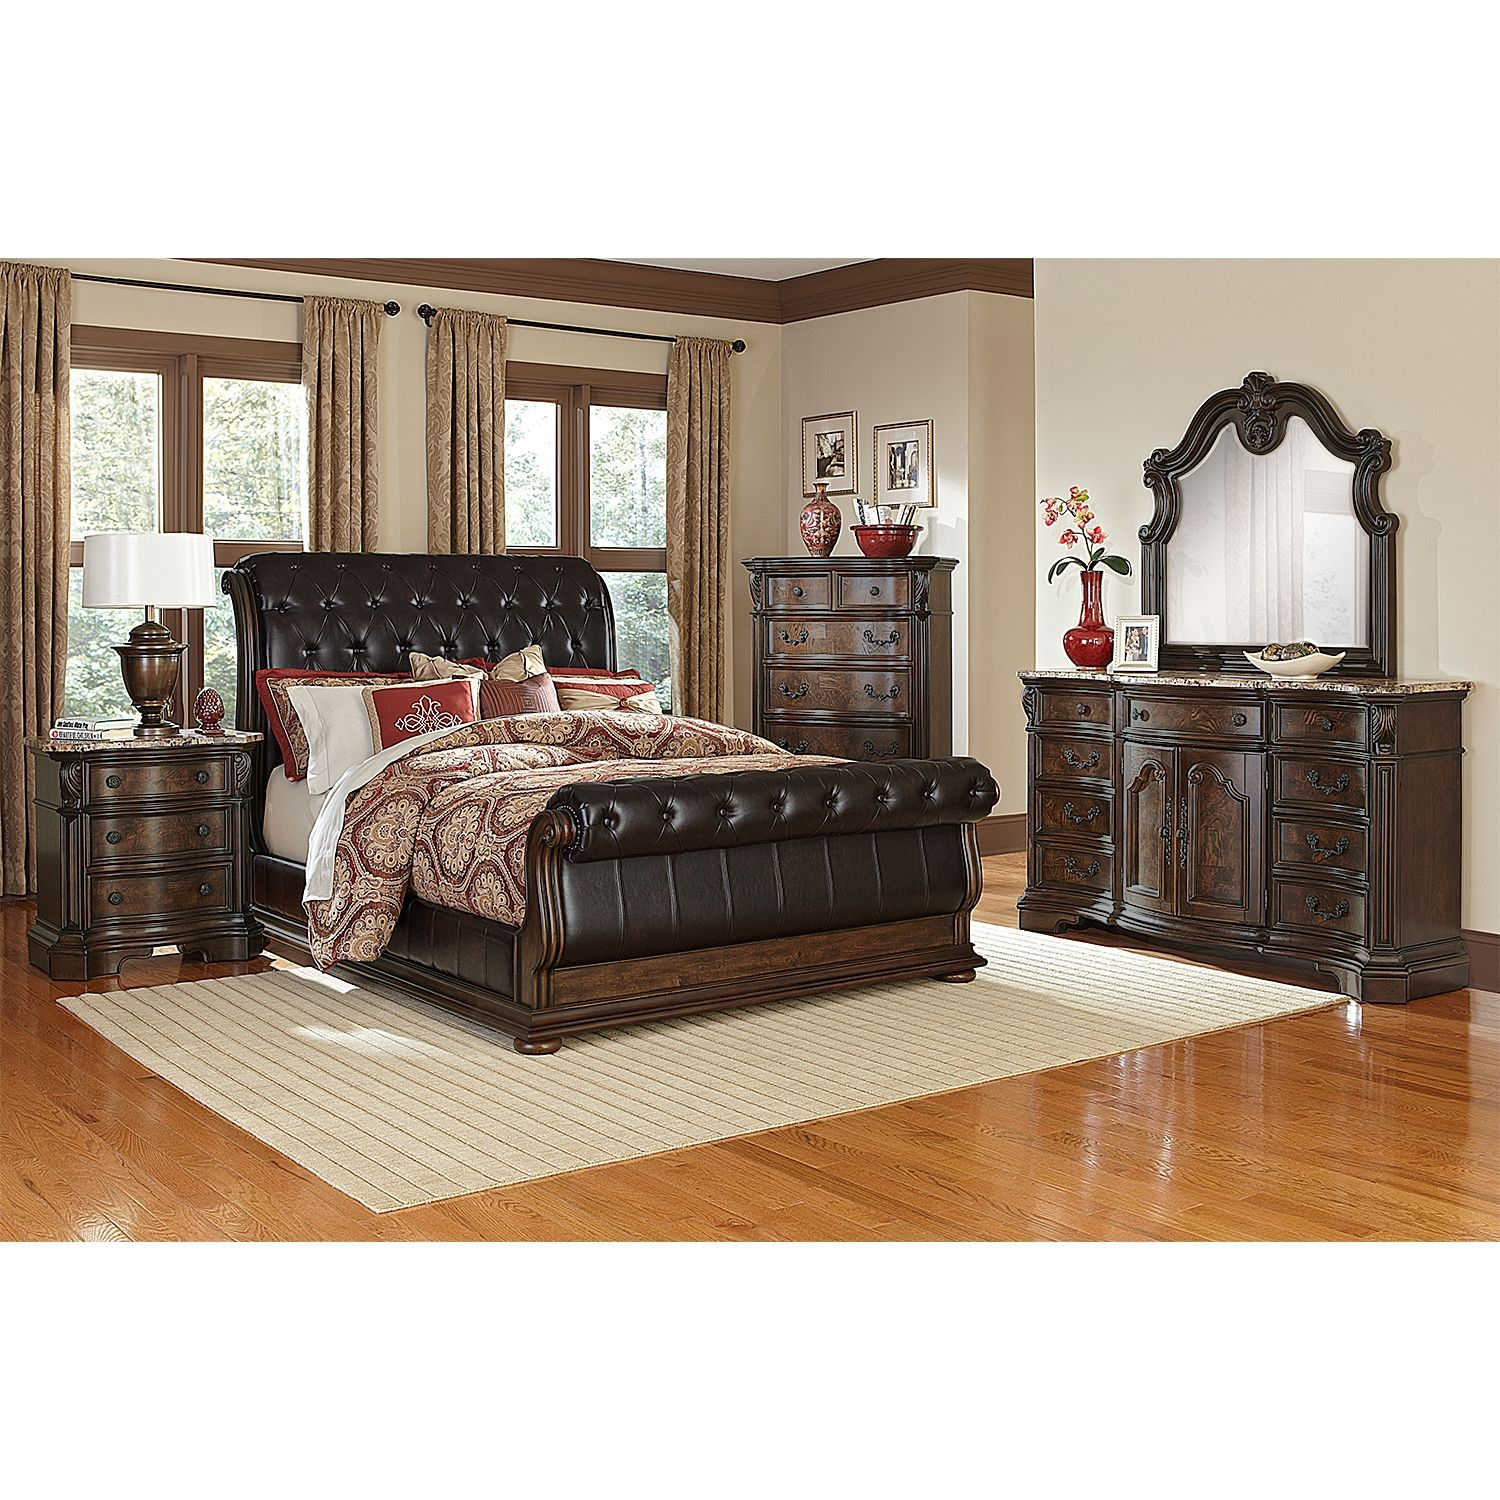 American Signature Furniture Com: Monticello Upholstered Sleigh Bed